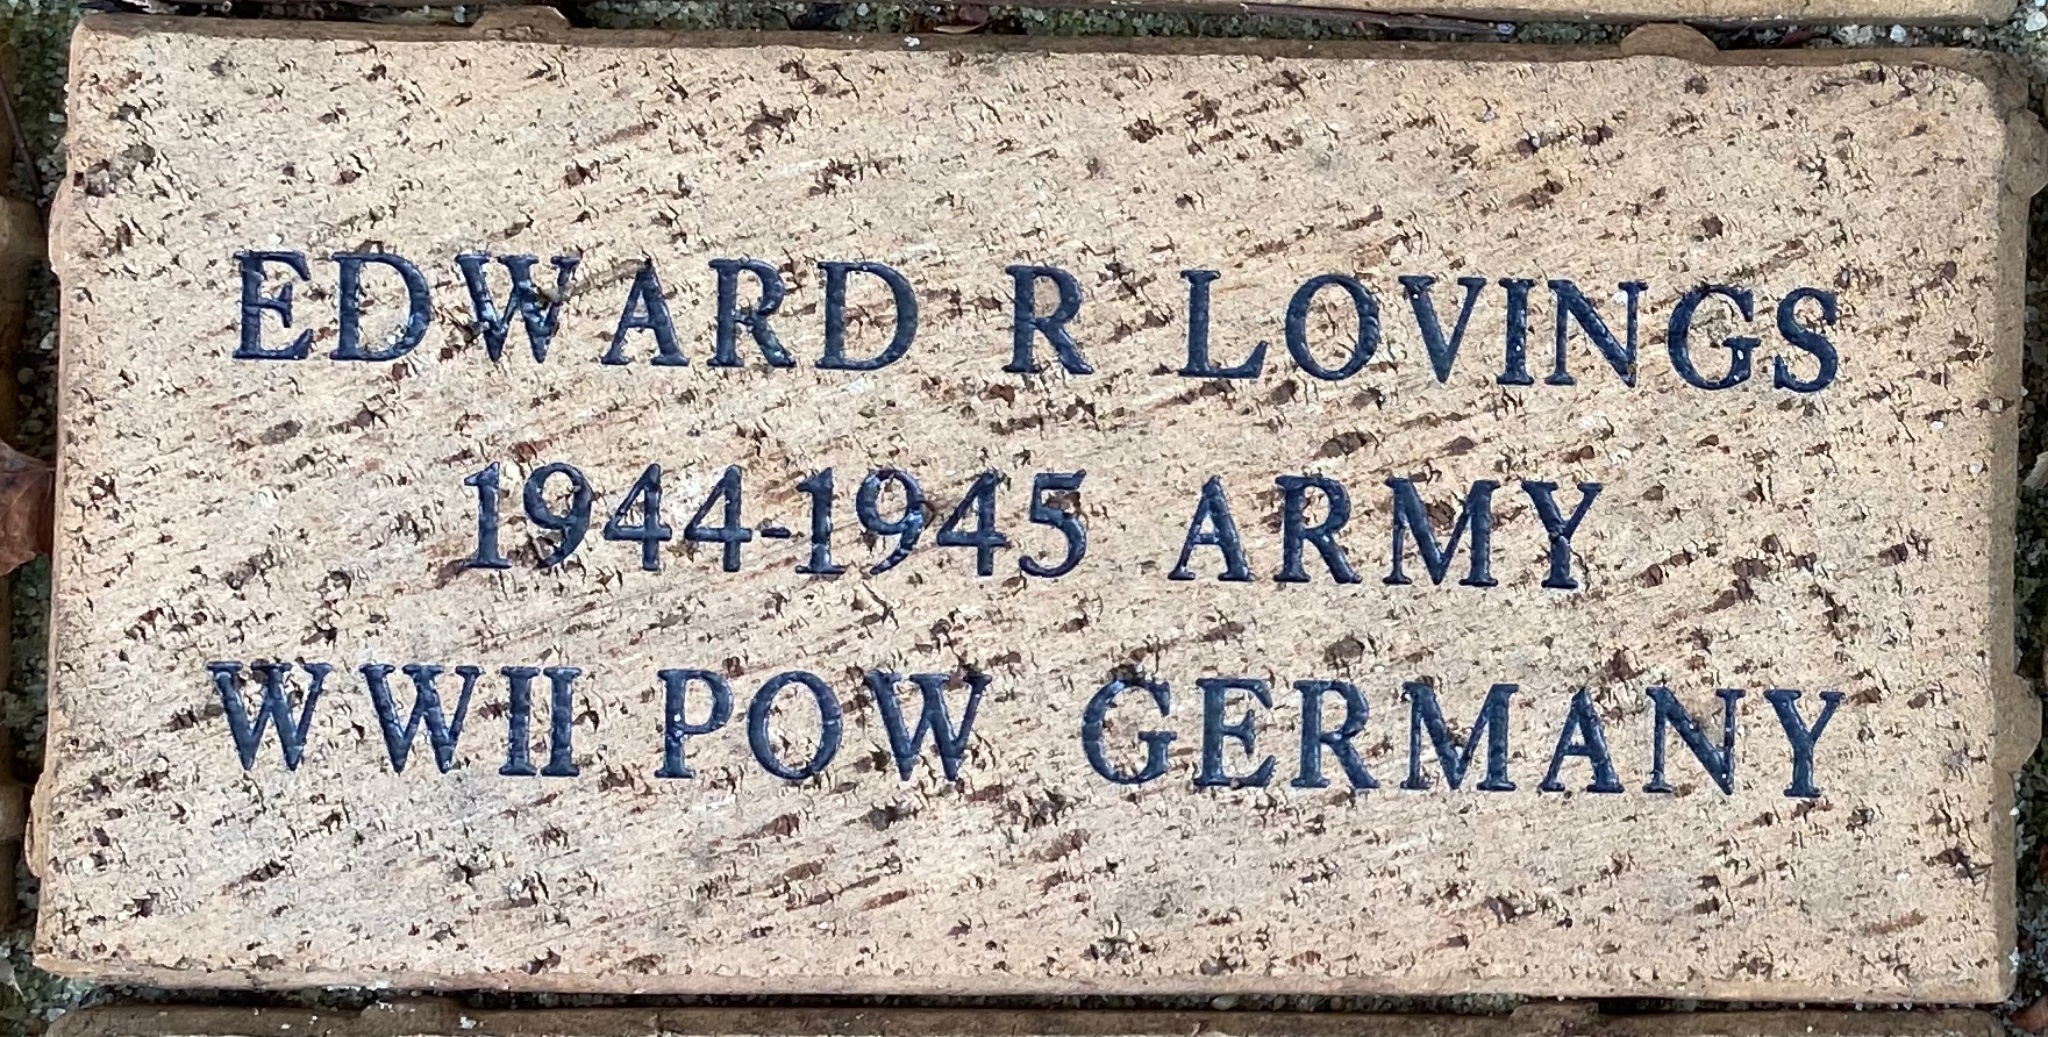 EDWARD R LOVINGS 1944-1945 ARMY WWII POW GERMANY